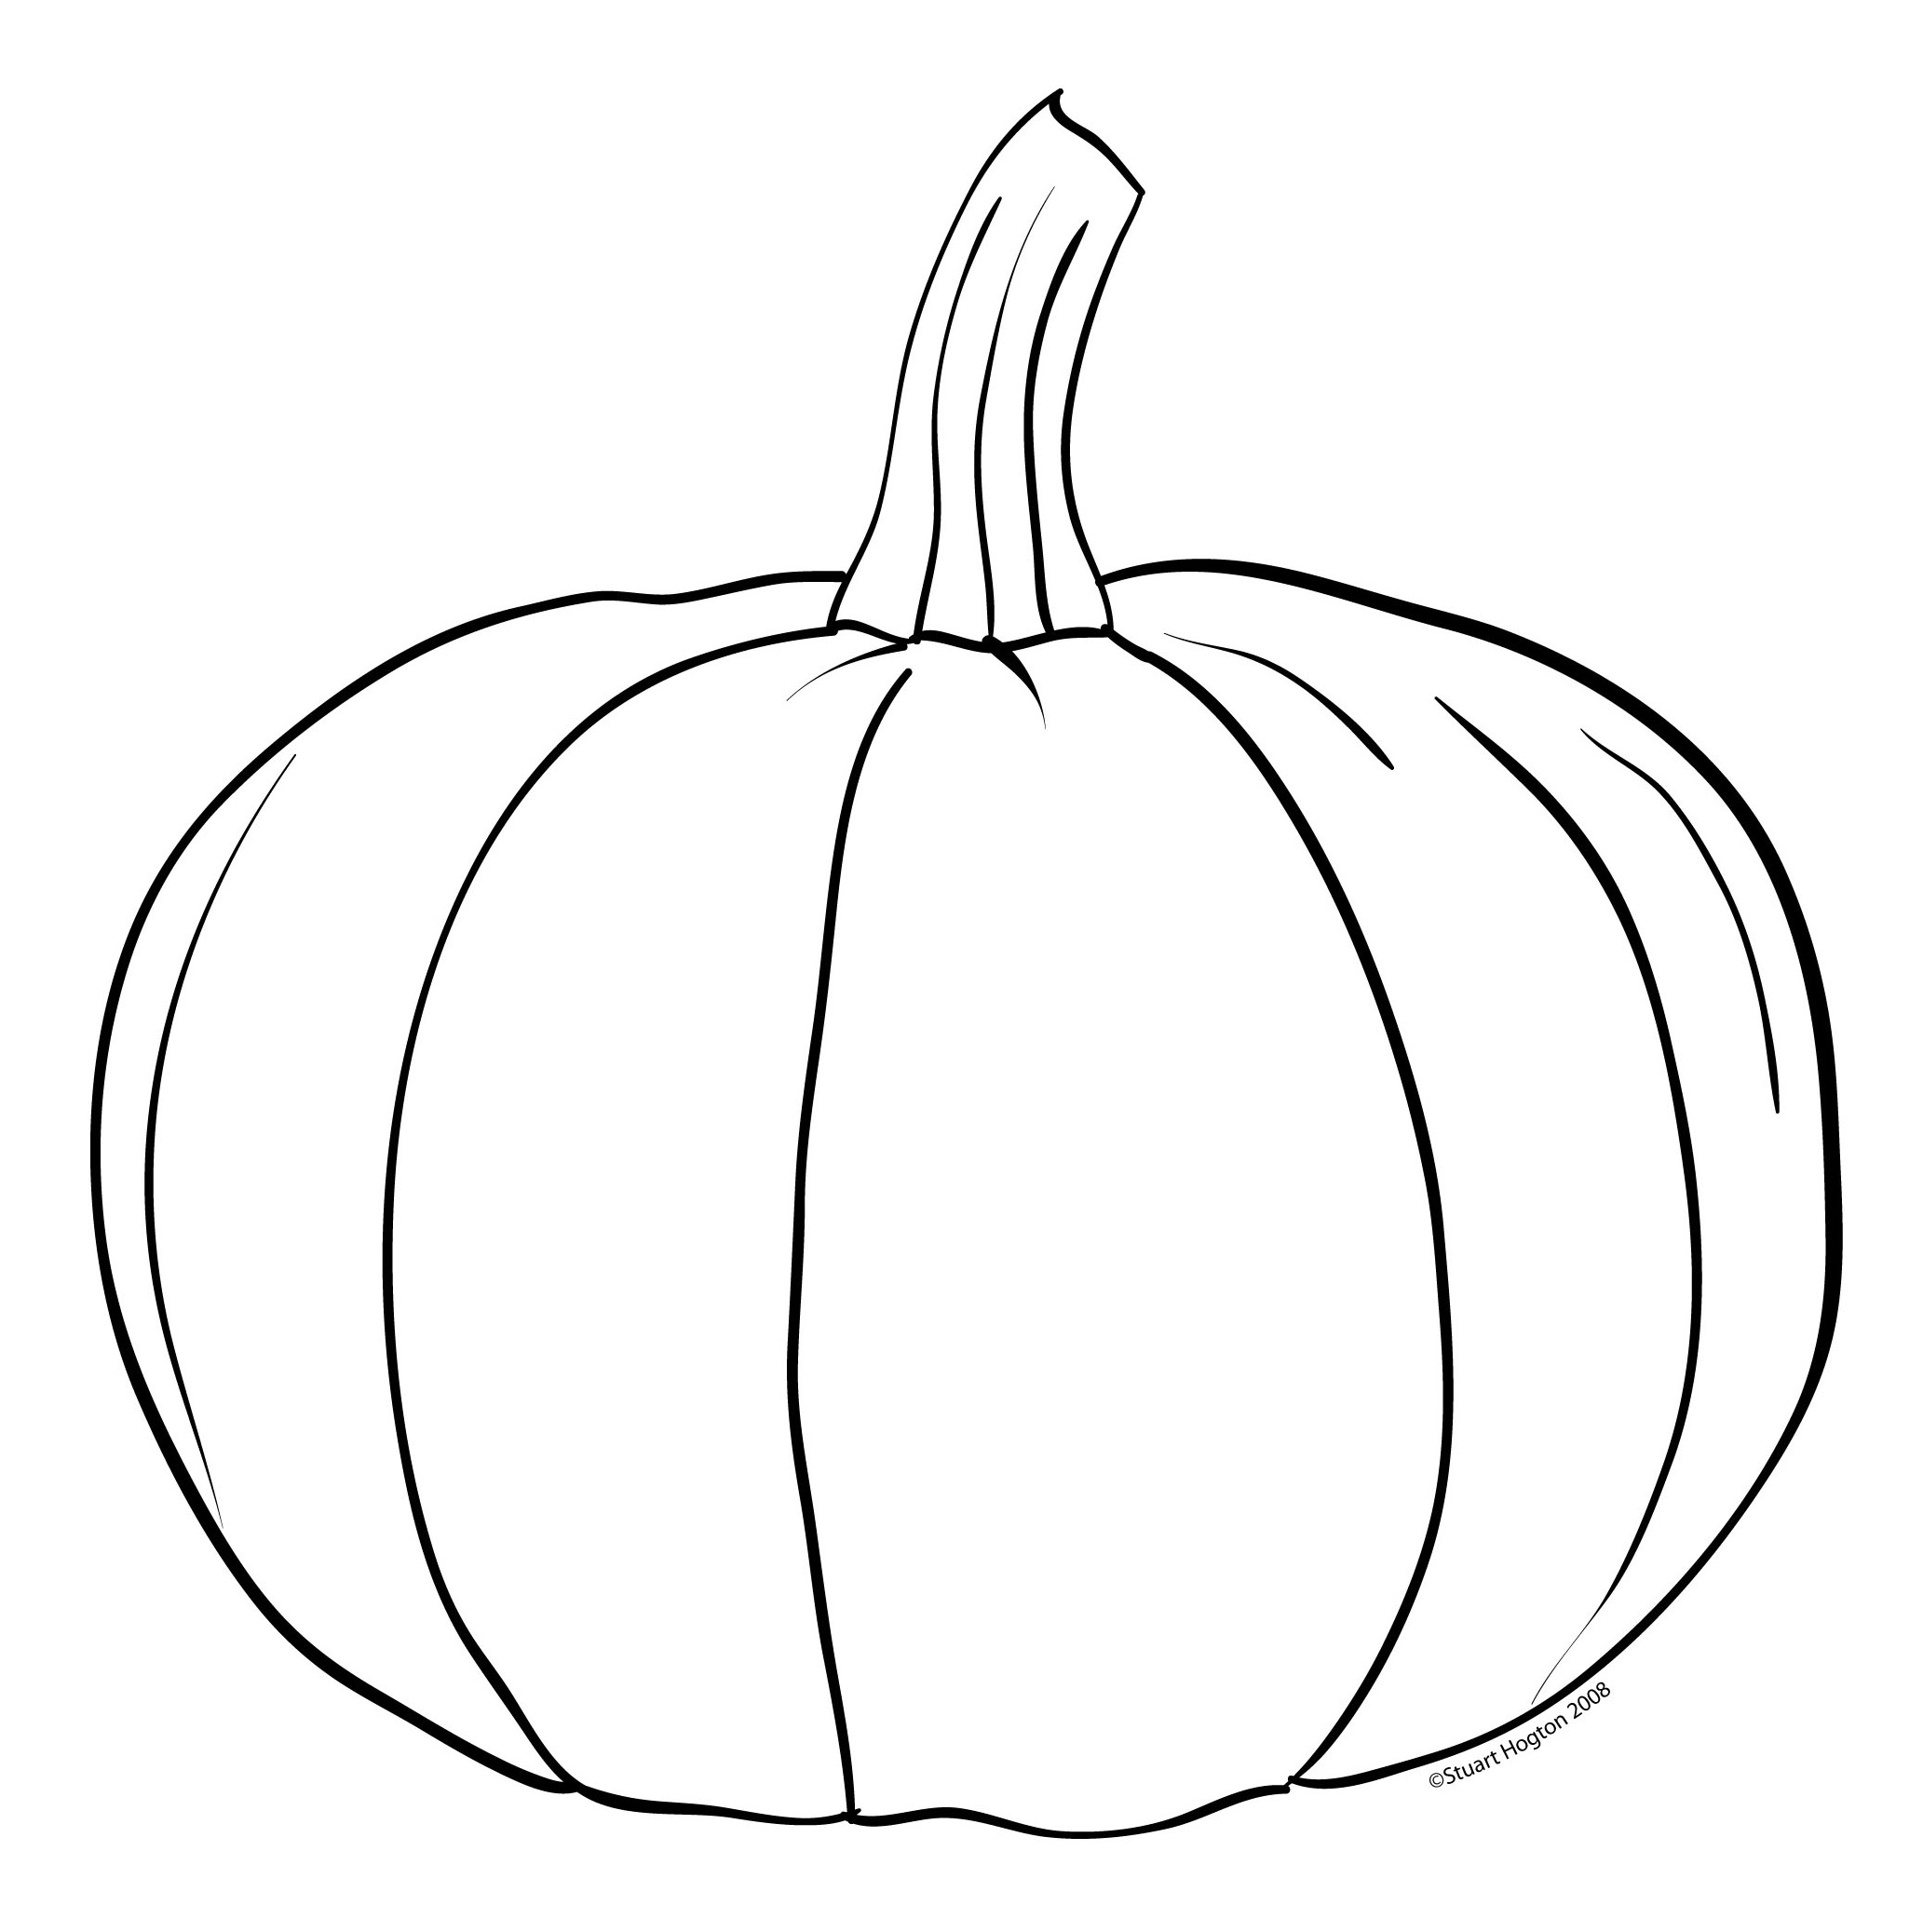 Black And White Pumpkin Clipart - ClipArt Best |Cartoon Black And White Pumkin